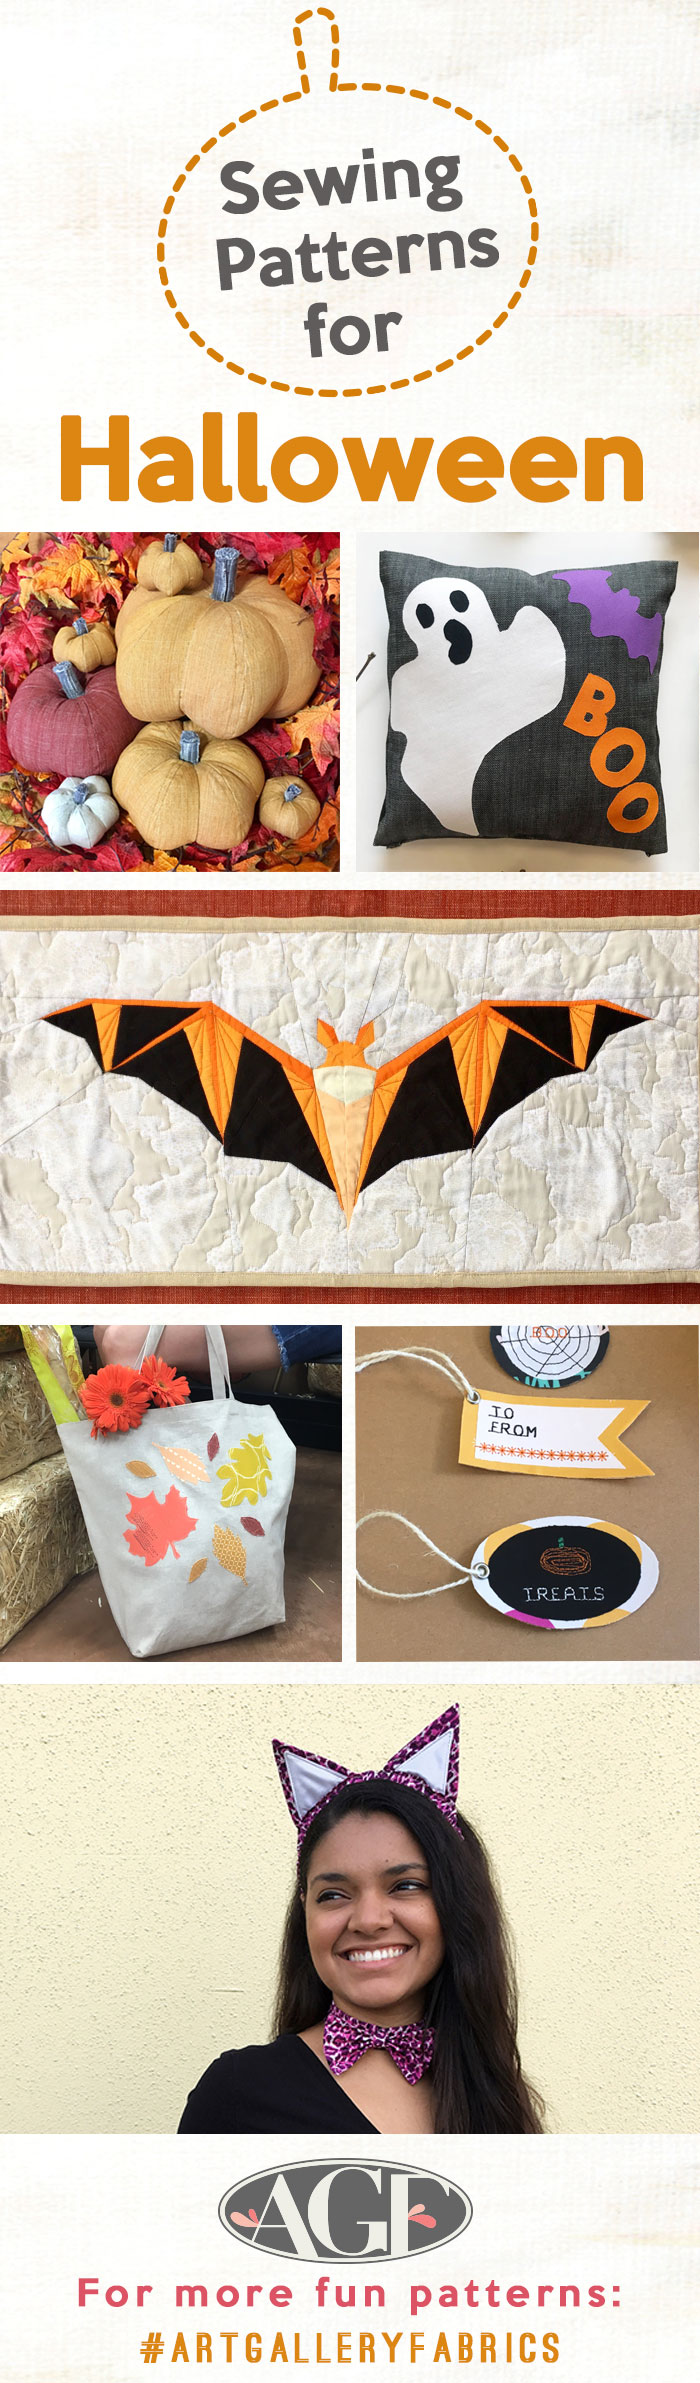 Pinterest-Halloween-Inspired-Sewing-Patterns